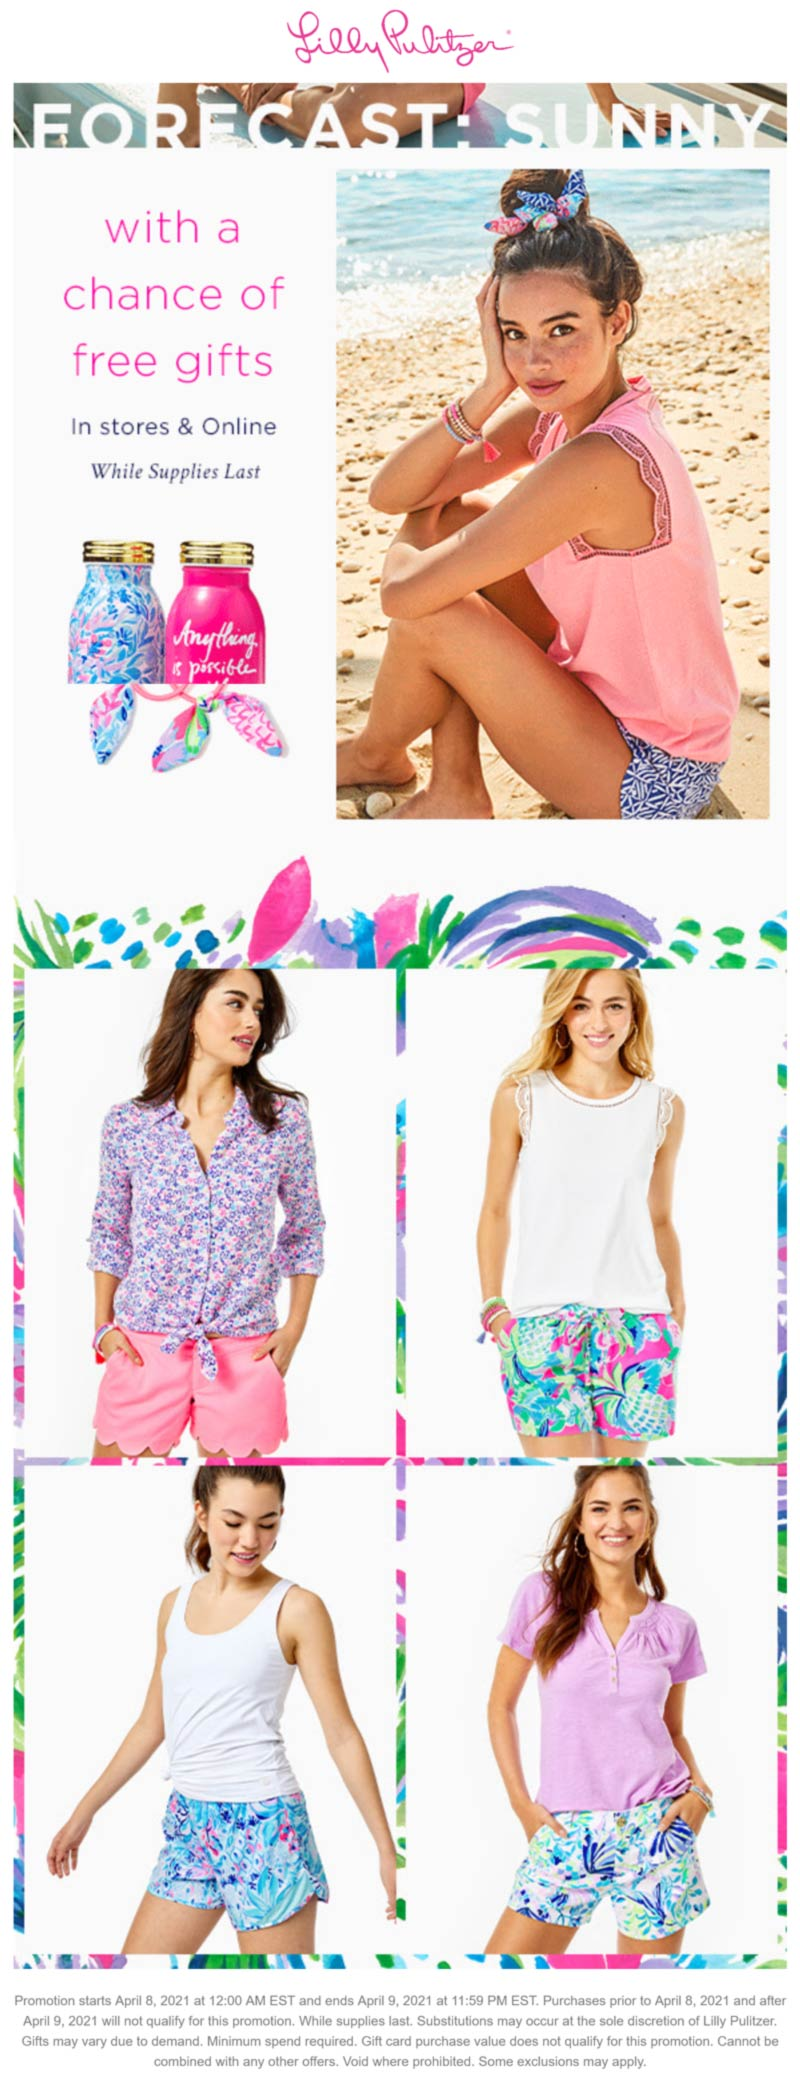 Lilly Pulitzer stores Coupon  Free water bottles with your purchase today at Lilly Pulitzer #lillypulitzer